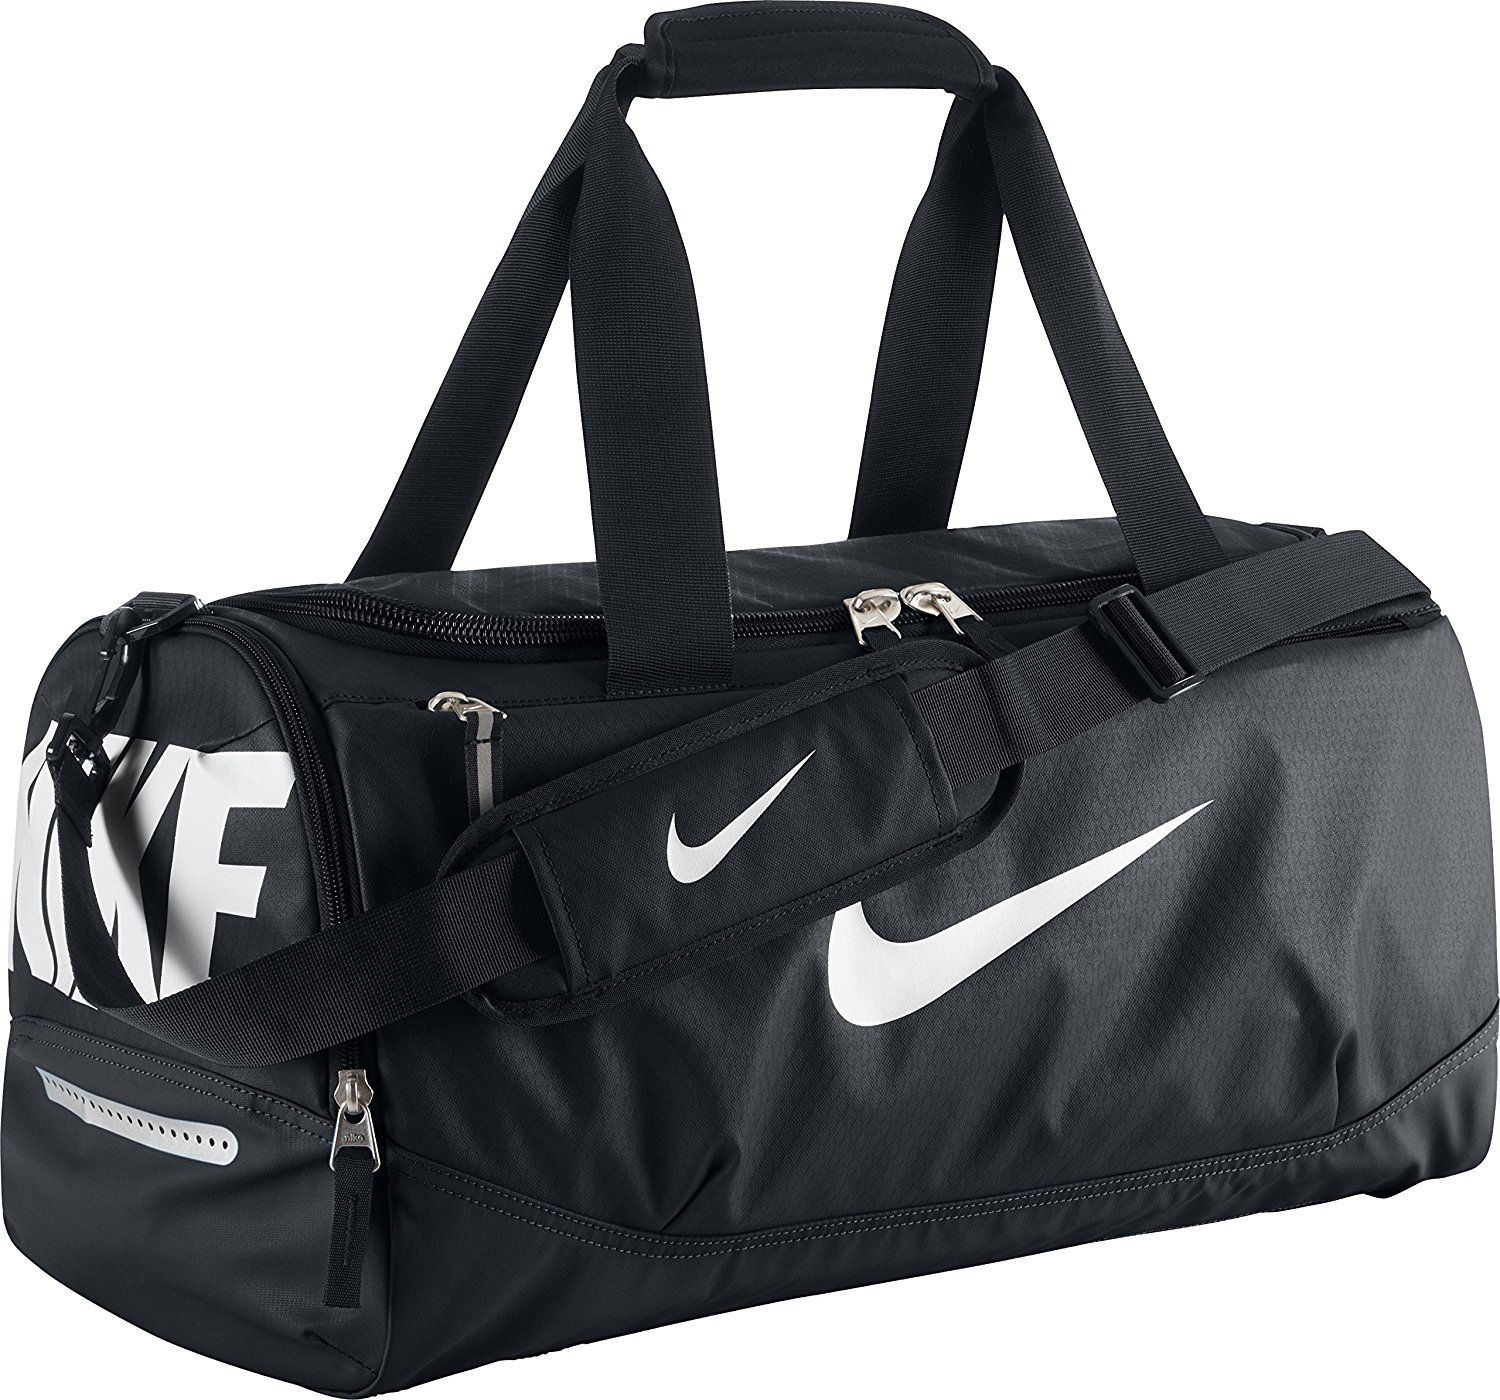 New Nike Team Training Small Duffel Bag    Continue to the product at the  image link. 3af3166a0d230